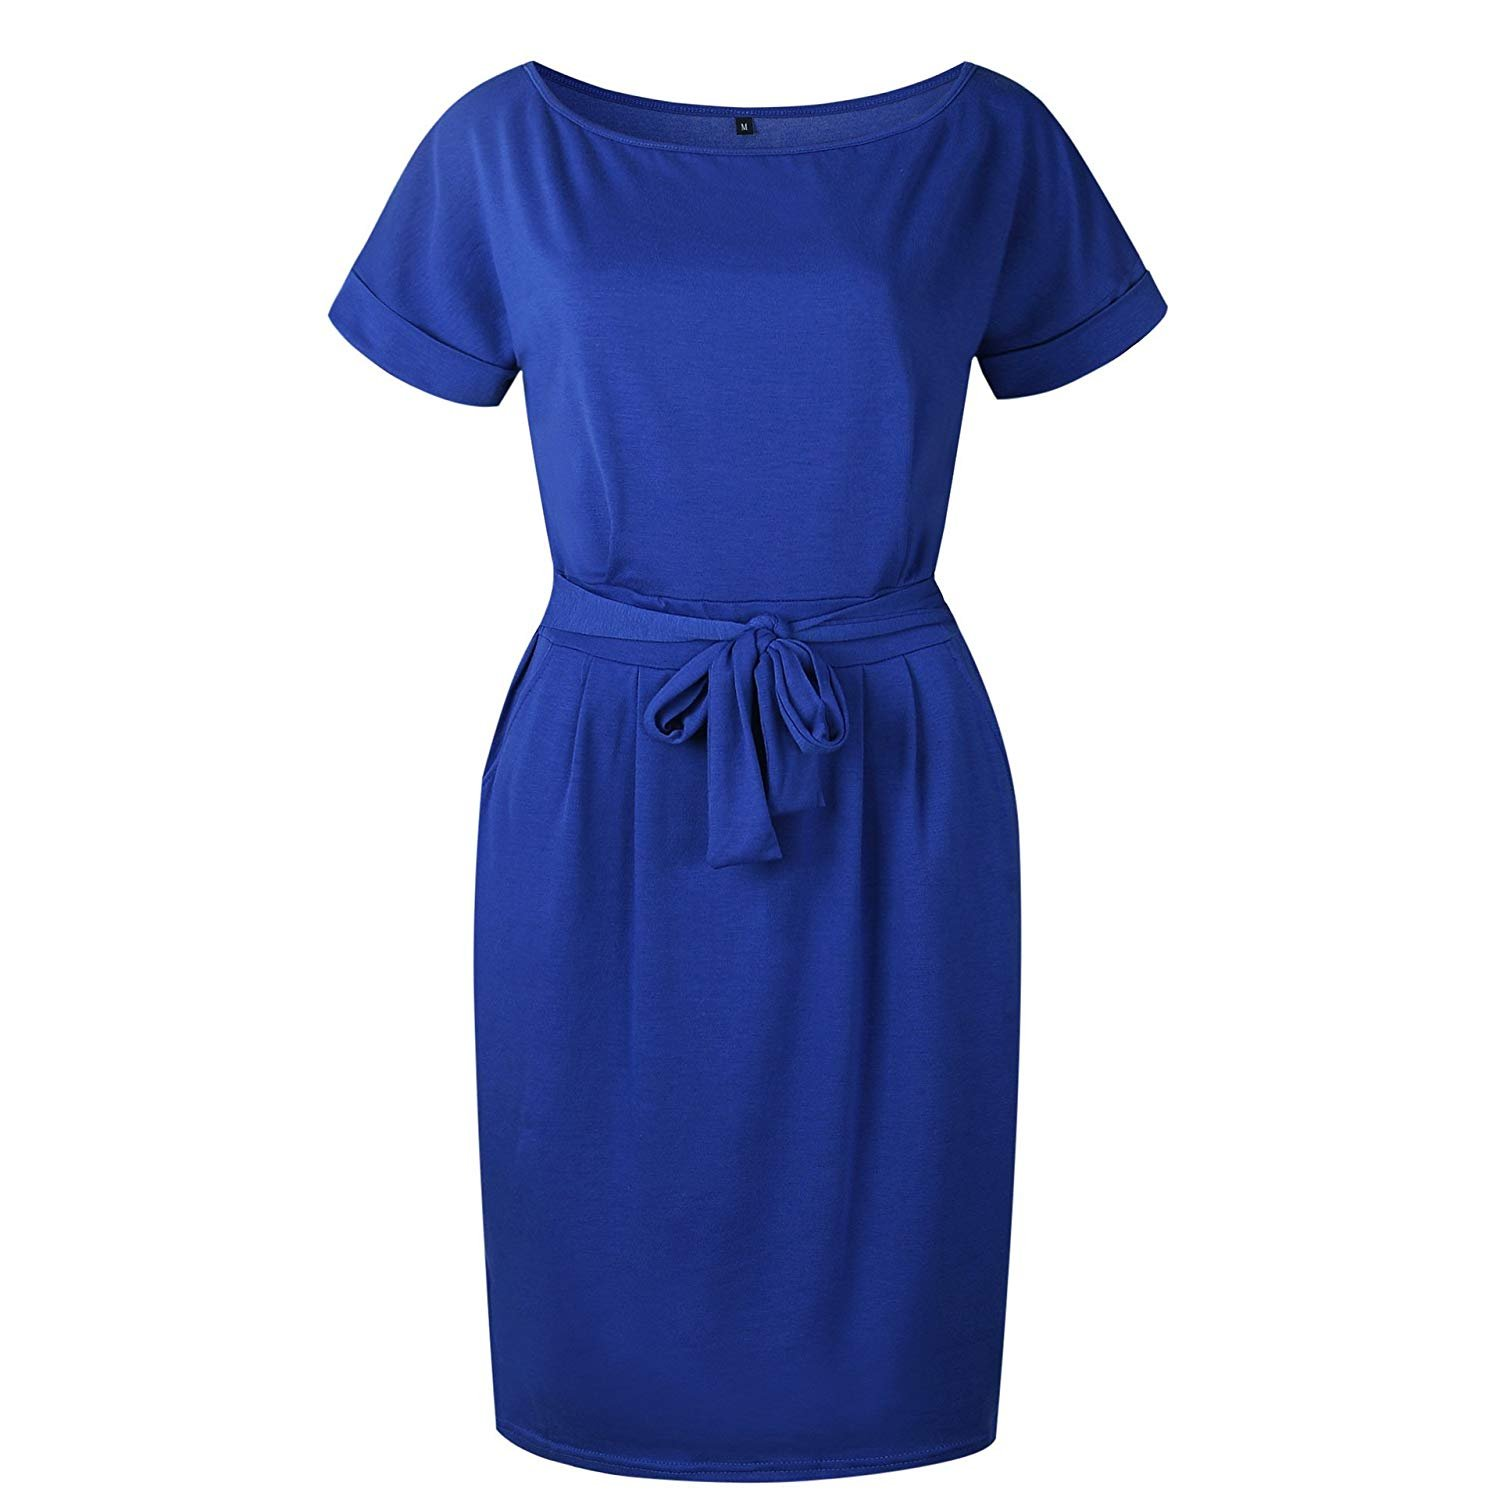 MIDOSOO Womens Business Wear to Work Short Sleeve Pencil Dress with Pockets Blue M by MIDOSOO (Image #4)